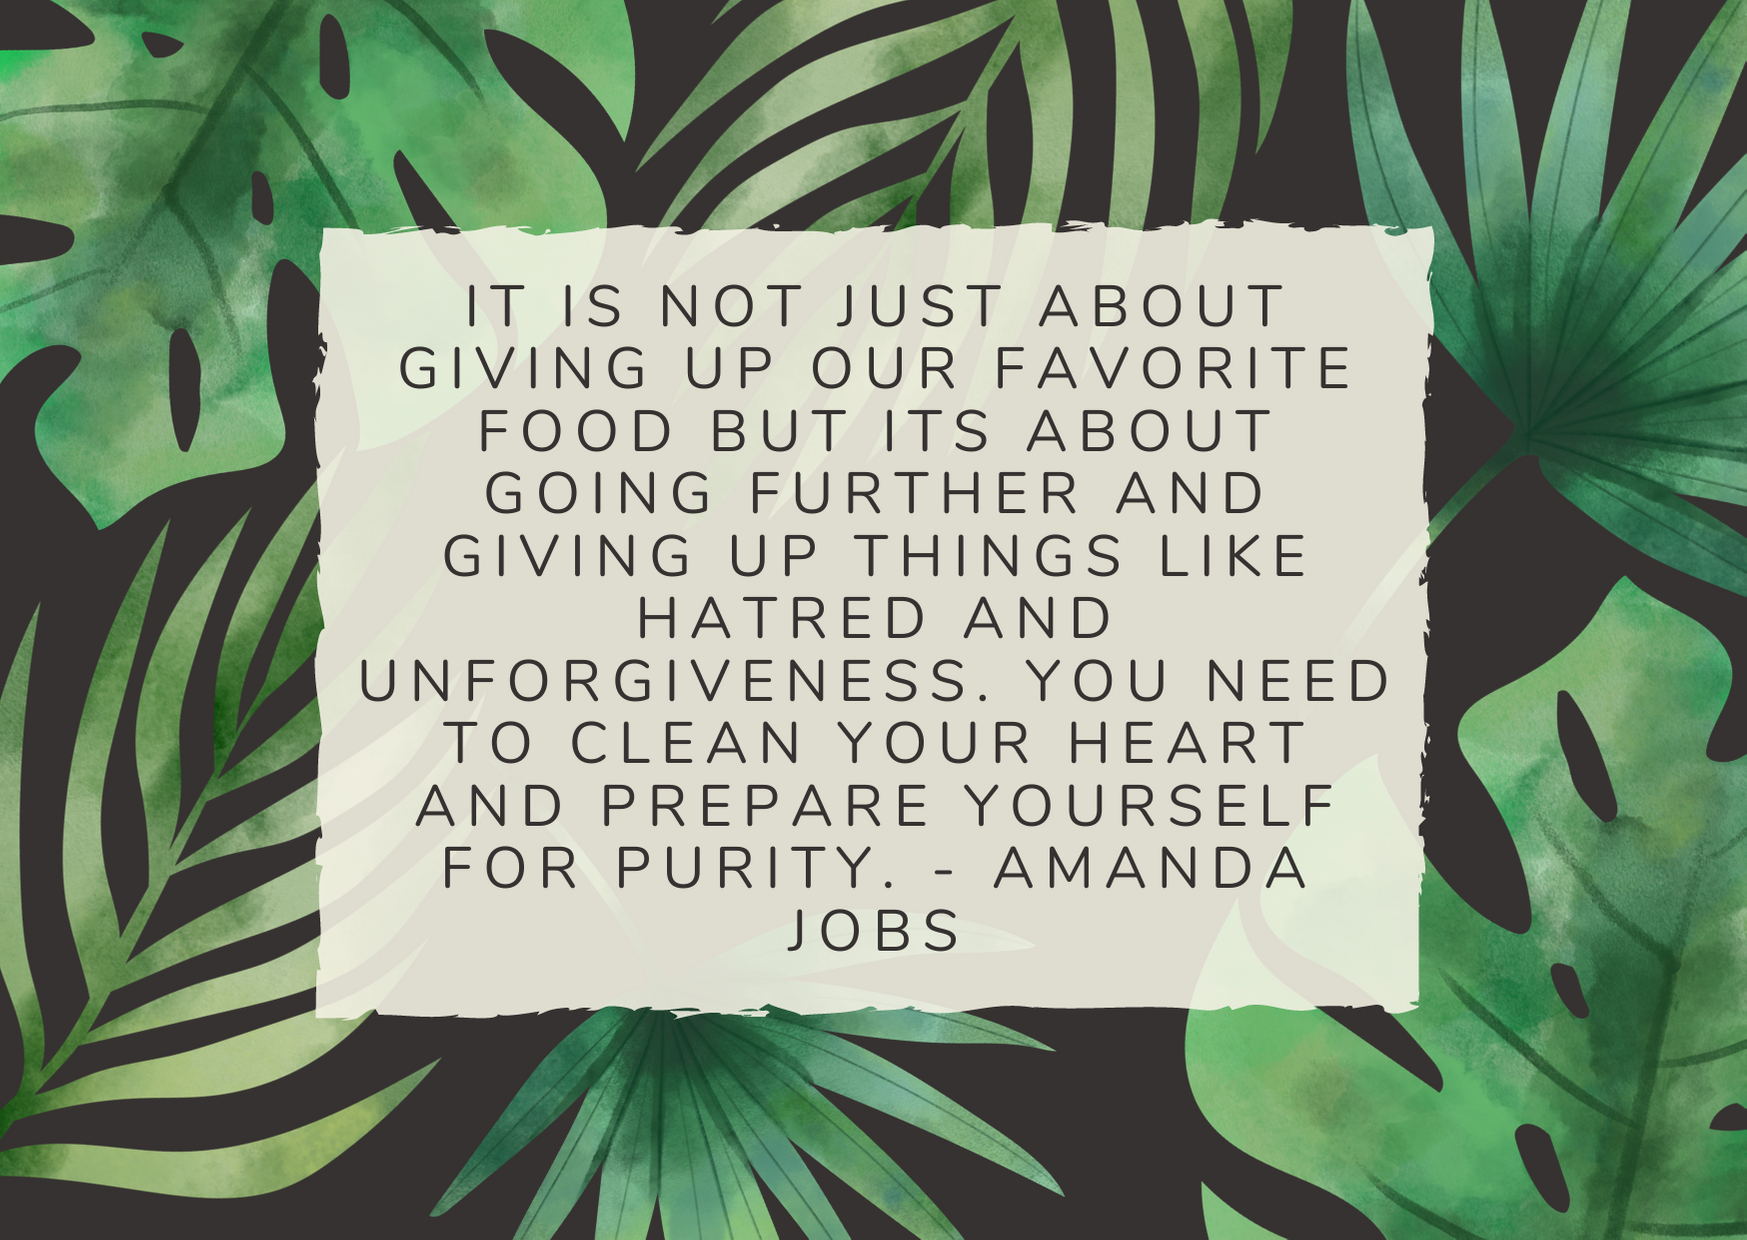 It is not just about giving up our favorite food but its about going further and giving up things like hatred and unforgiveness. You need to clean your heart and prepare yourself for purity. - Amanda Jobs